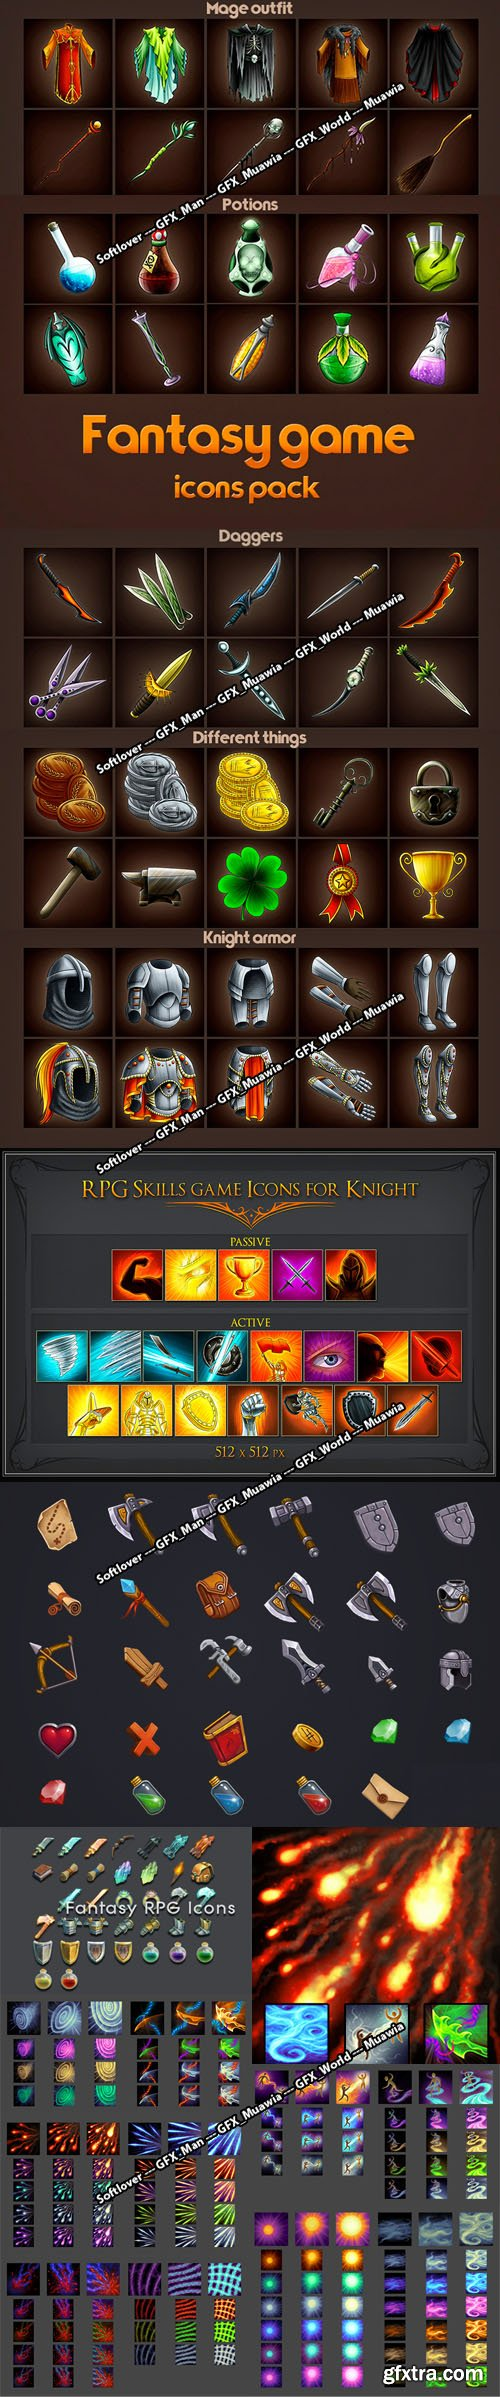 Fantasy RPG Game Icons Pack in PSD [PSD/PNG/JPG]